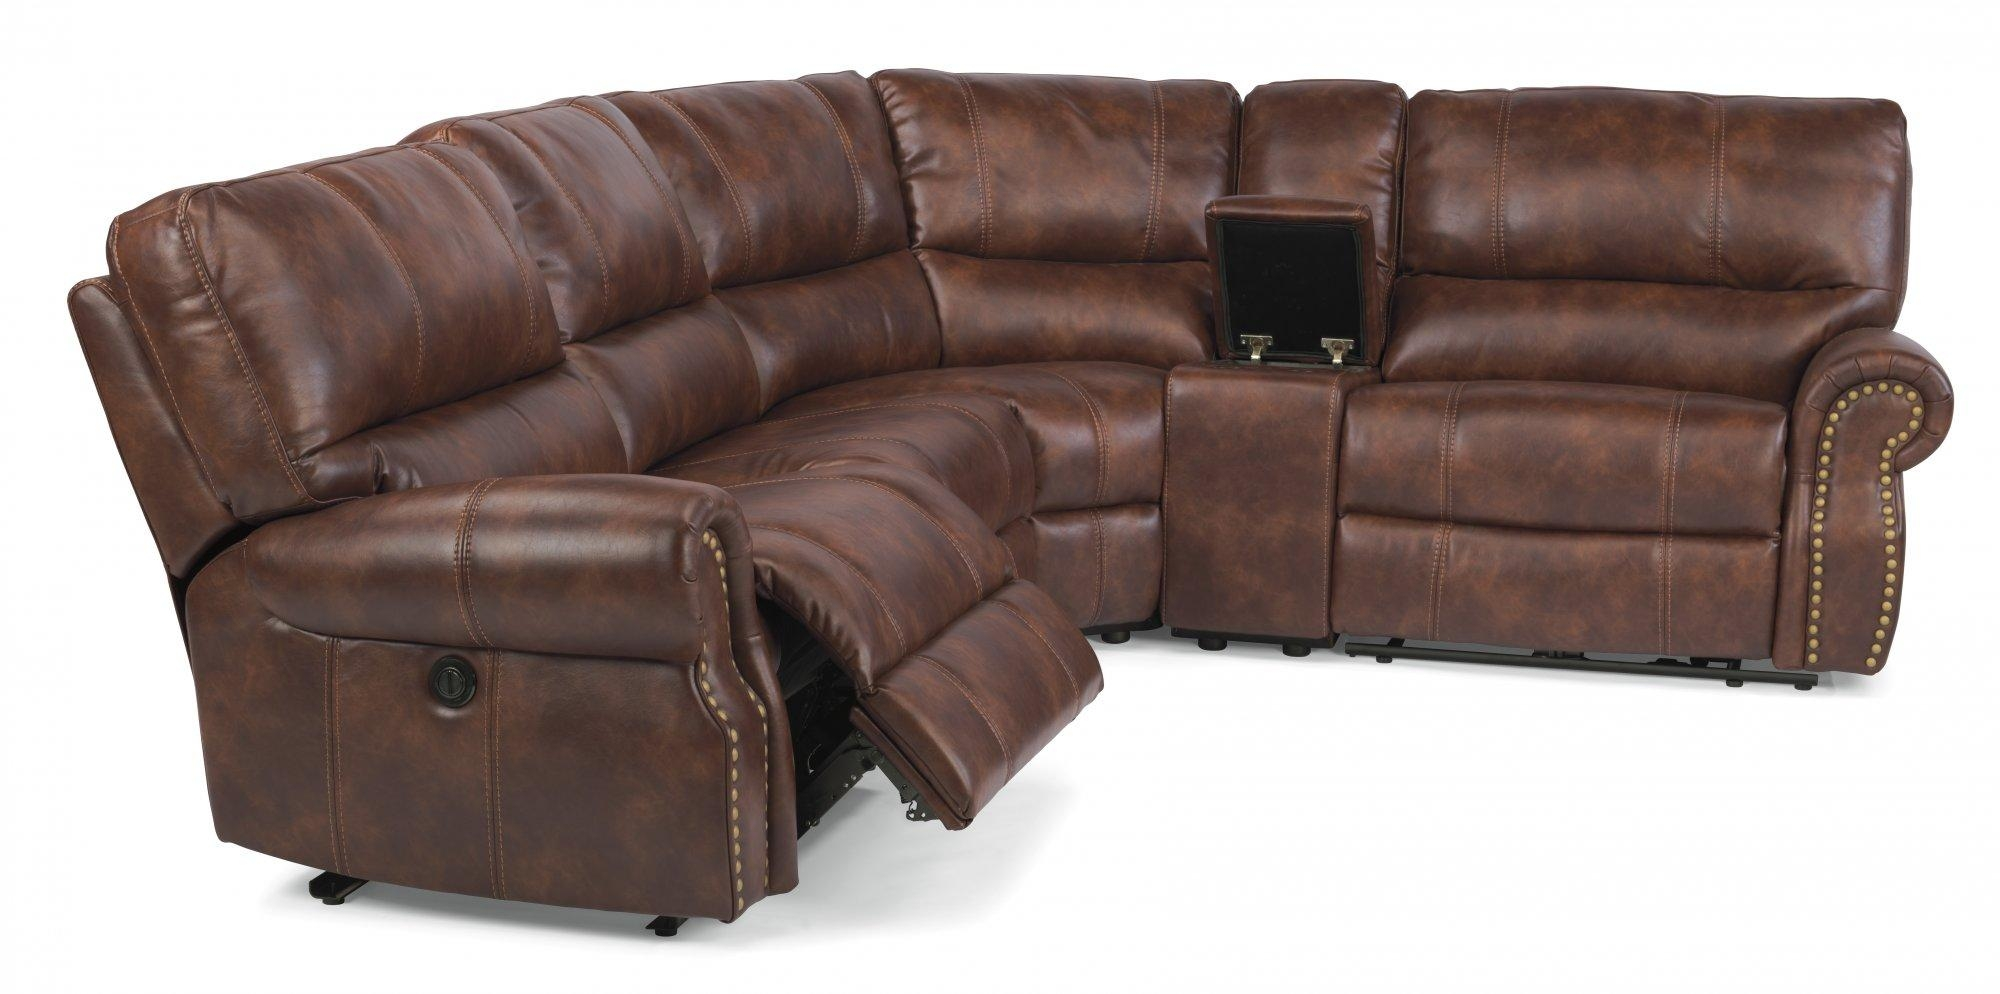 huge leather sectional sofa with electric footrest 20 ideas of